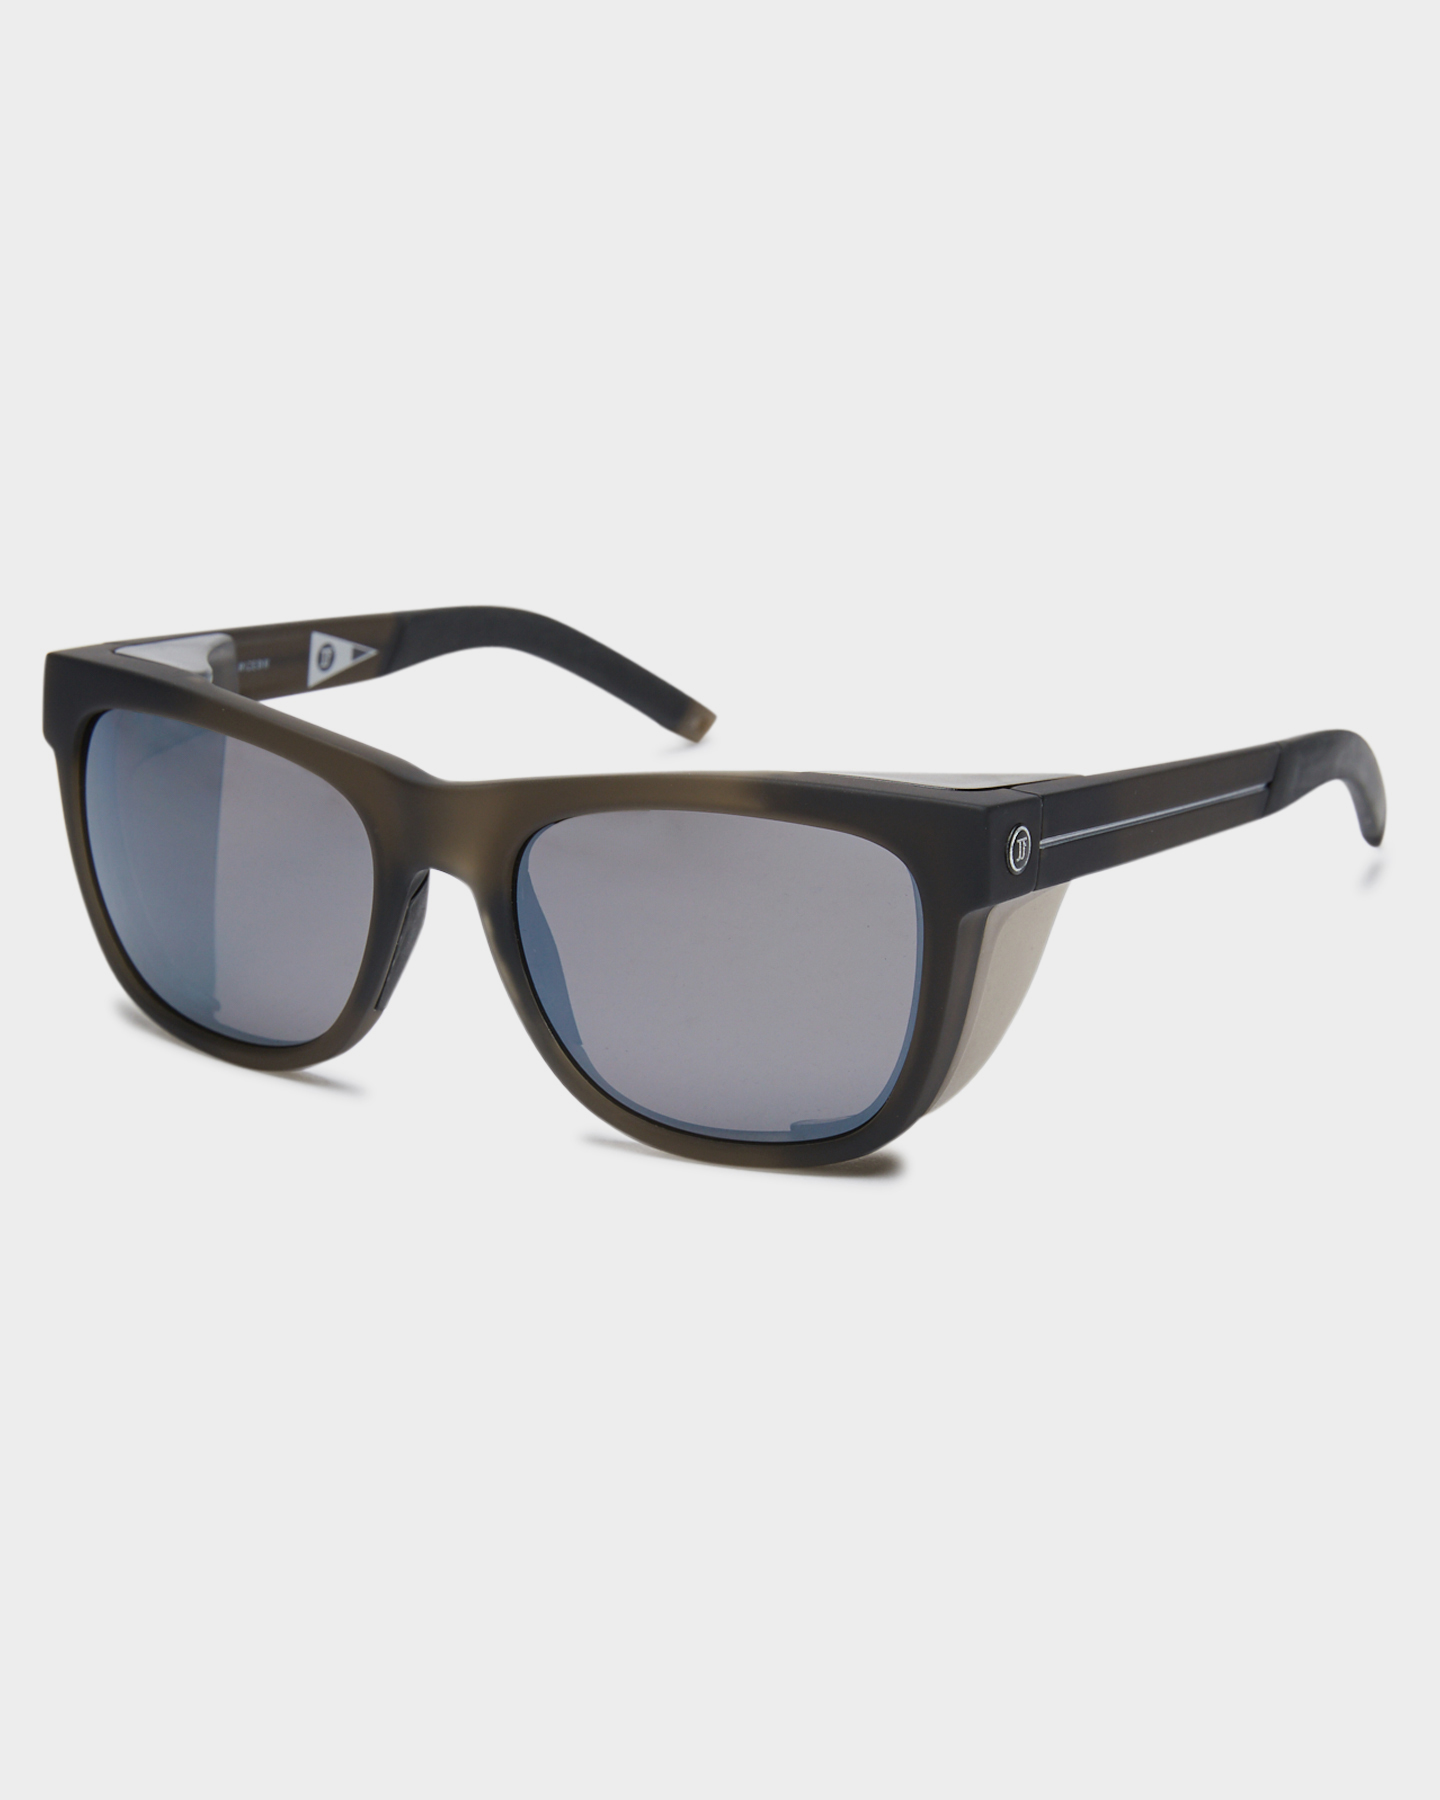 Electric Jjf12 Polarized Sunglasses Dark Smoke Silver